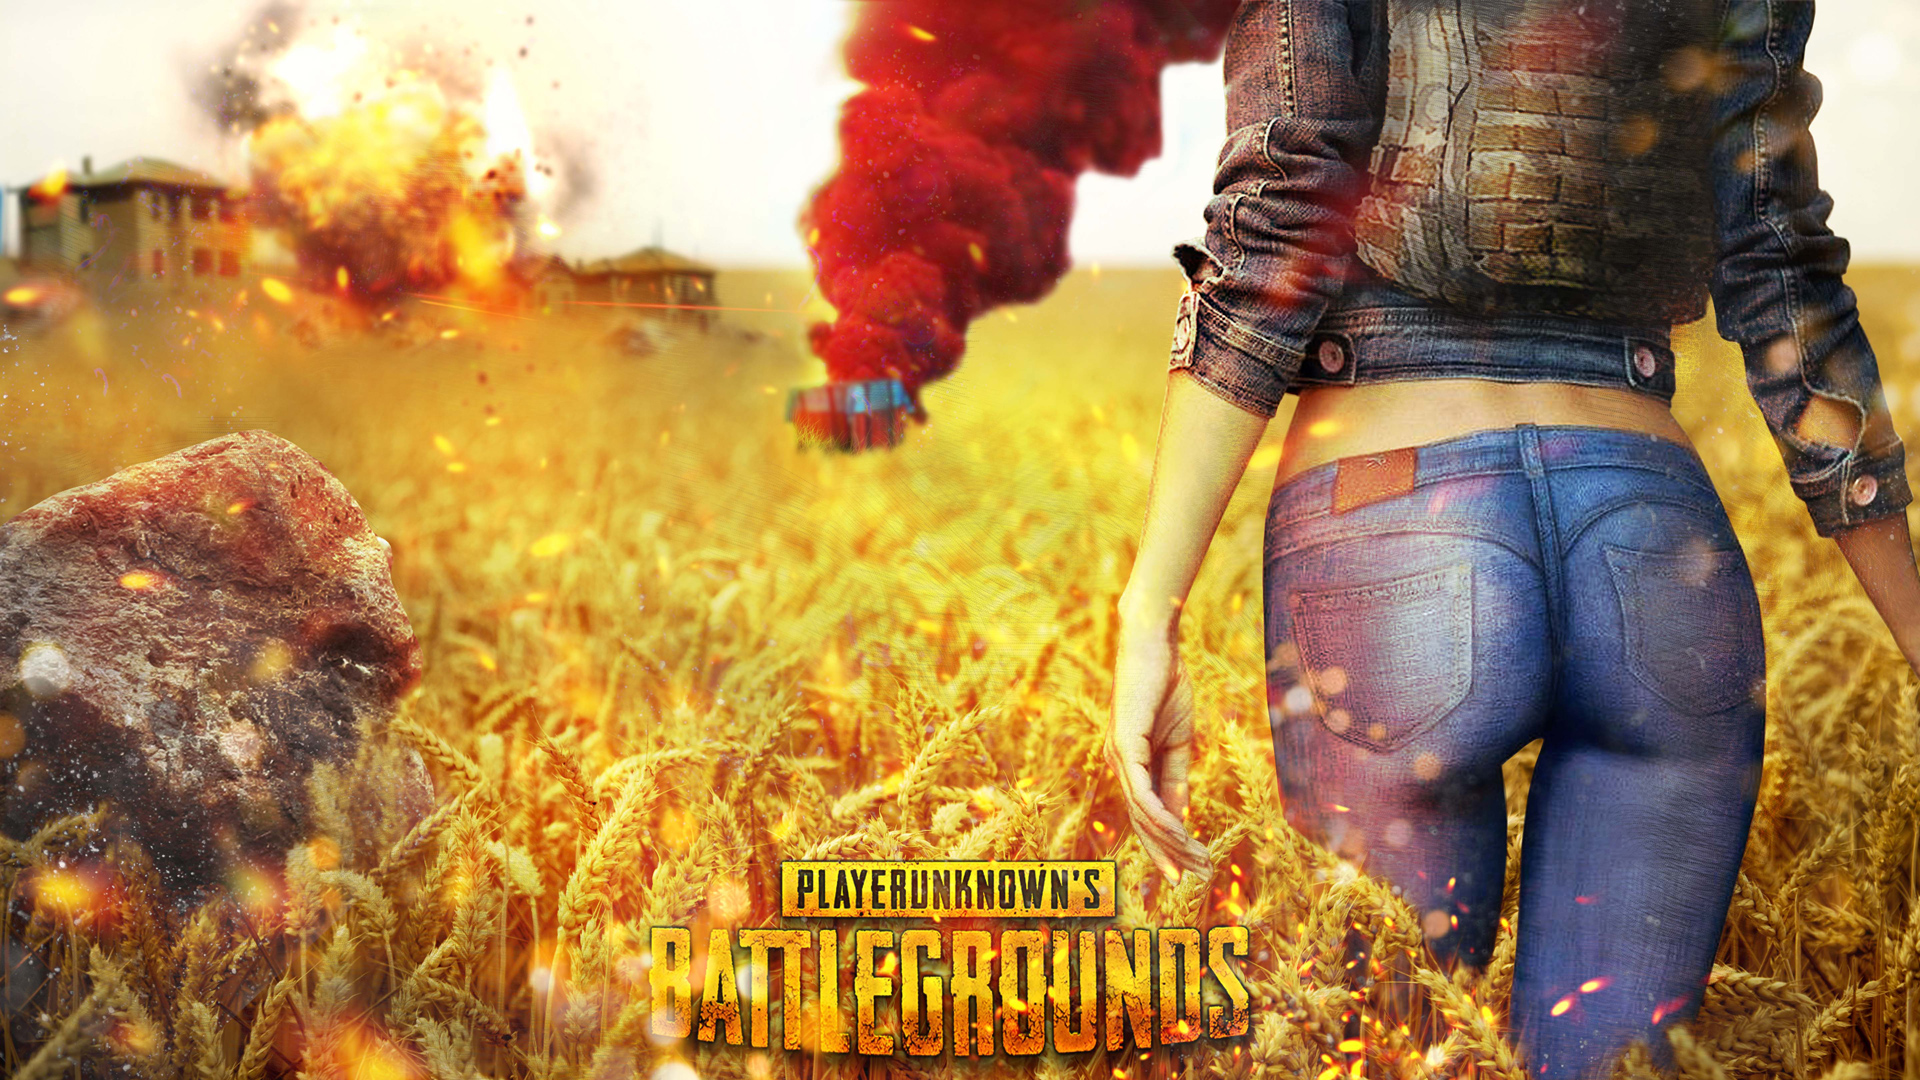 Playerunknowns Battlegrounds 1080p Hd Games 4k Wallpapers Images